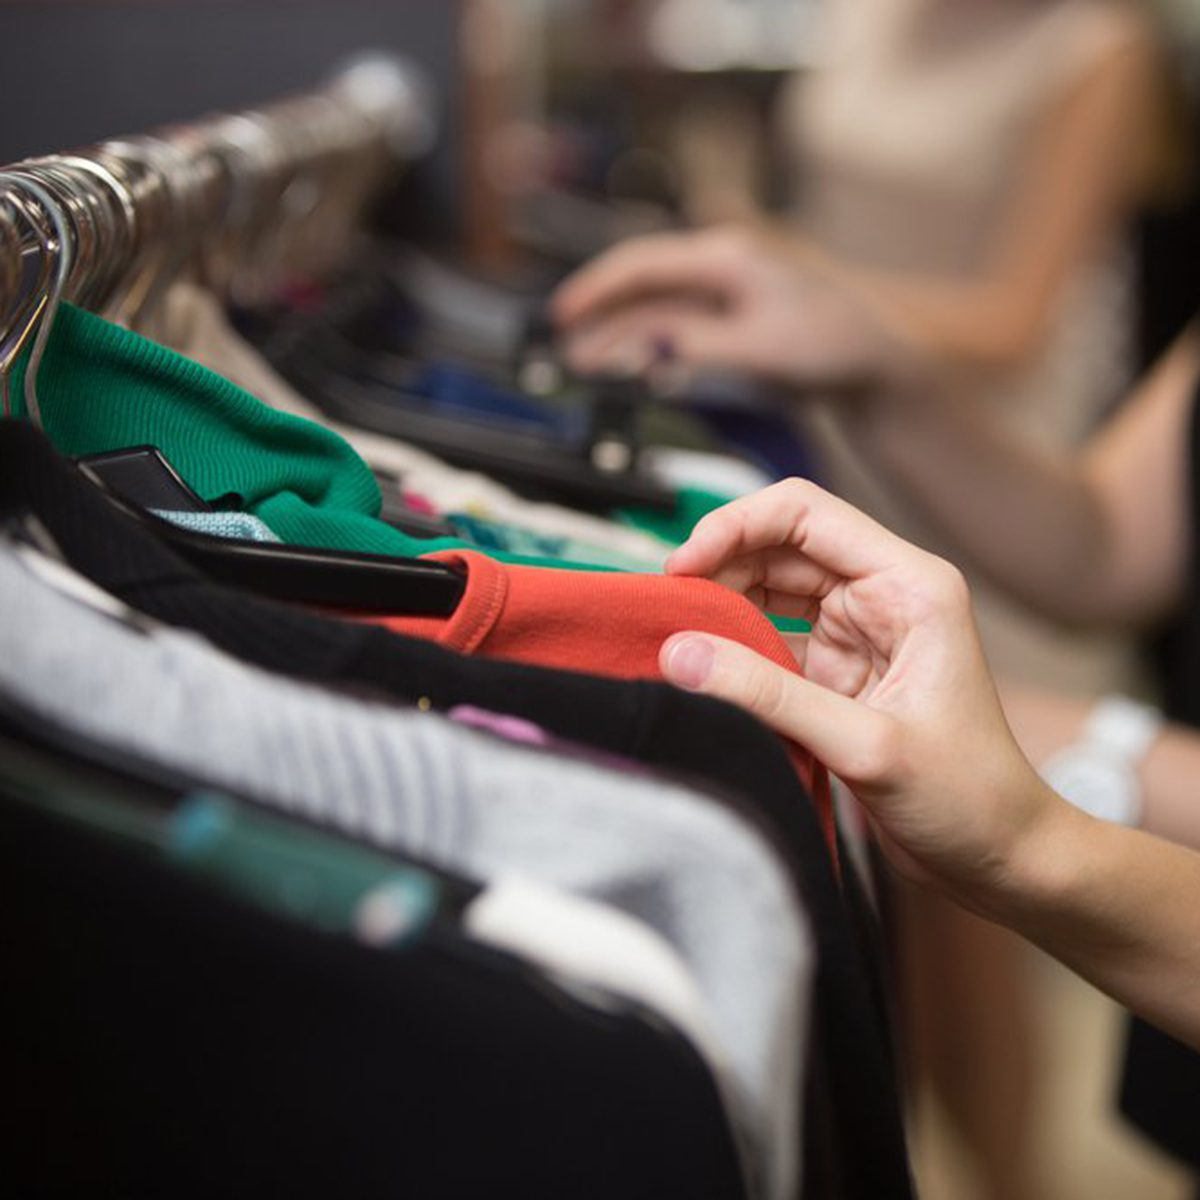 Choosing clothing from a rack